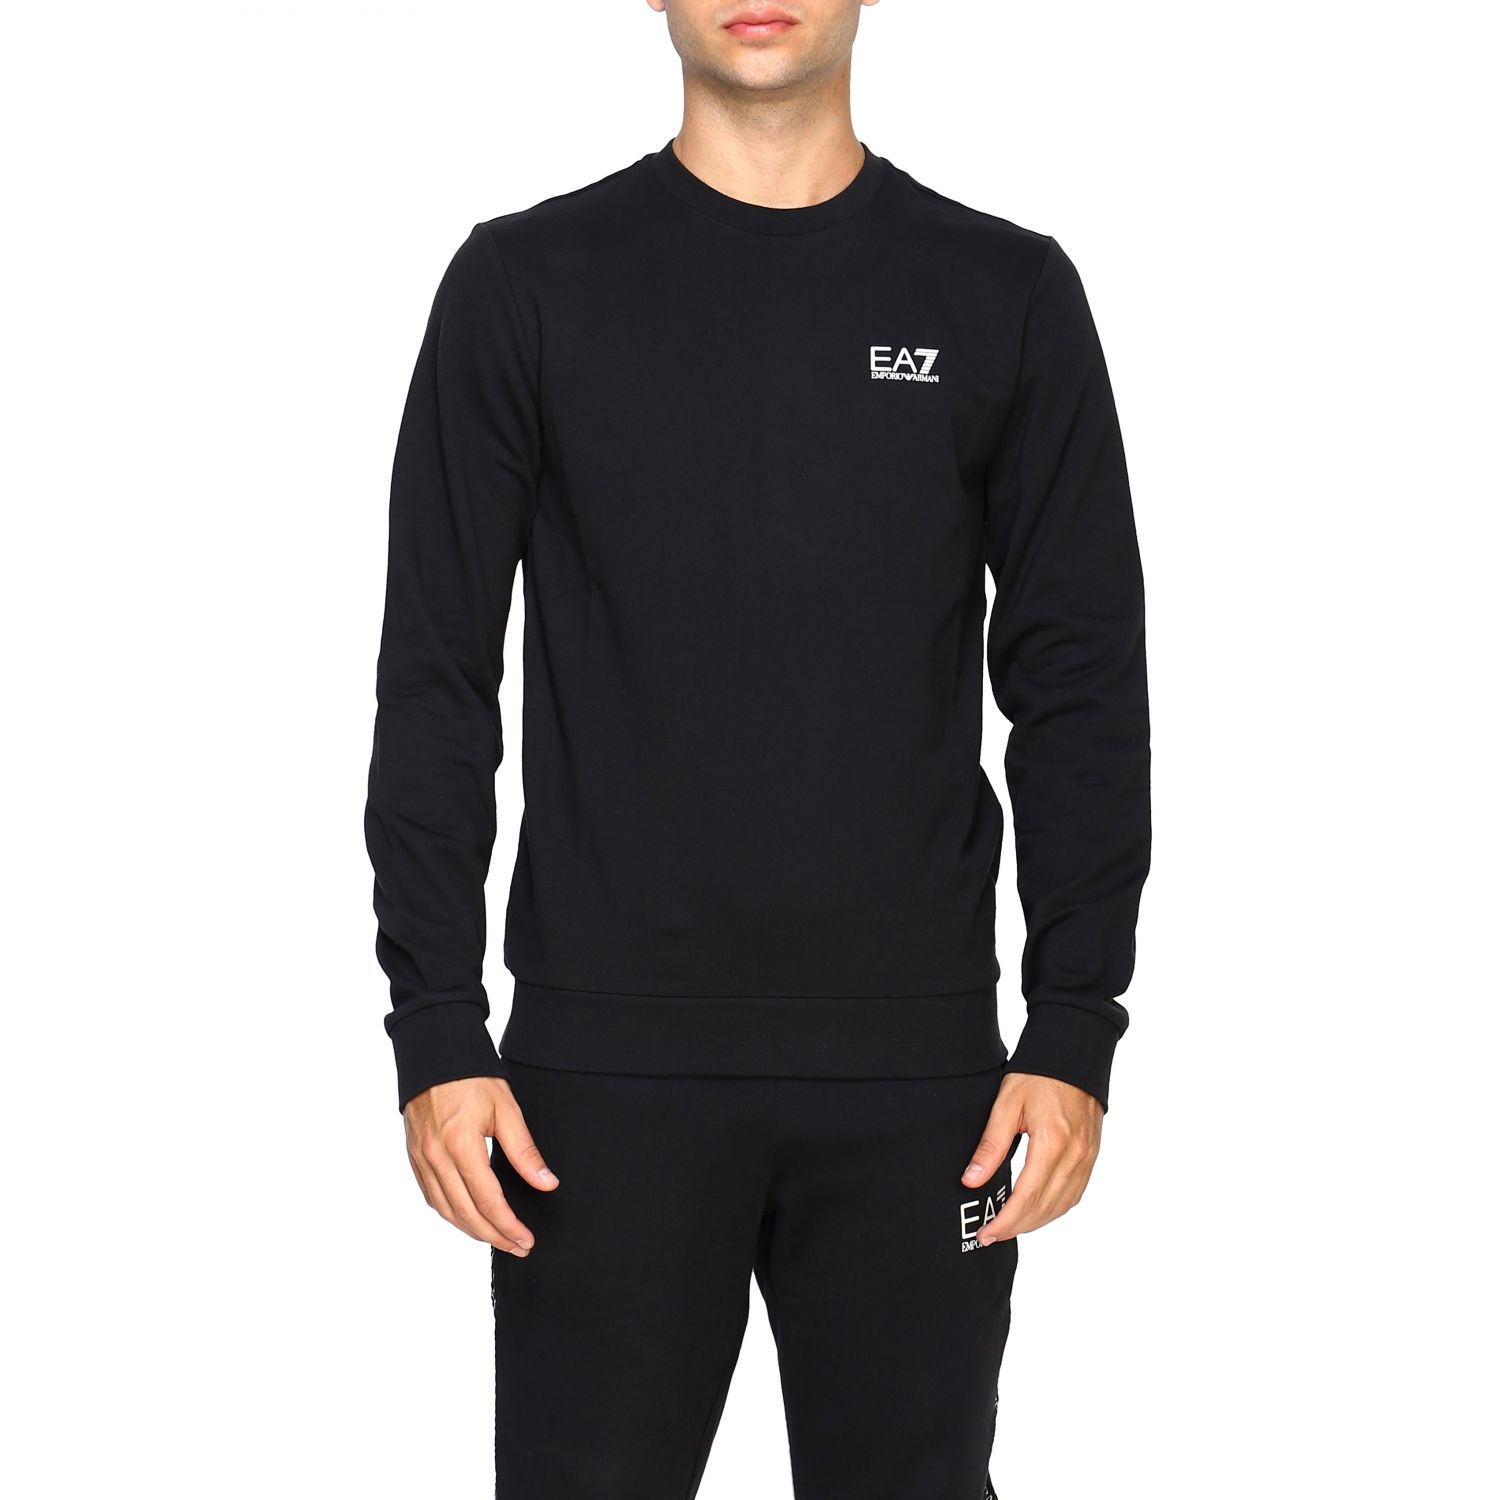 Sweater men Ea7 black 1